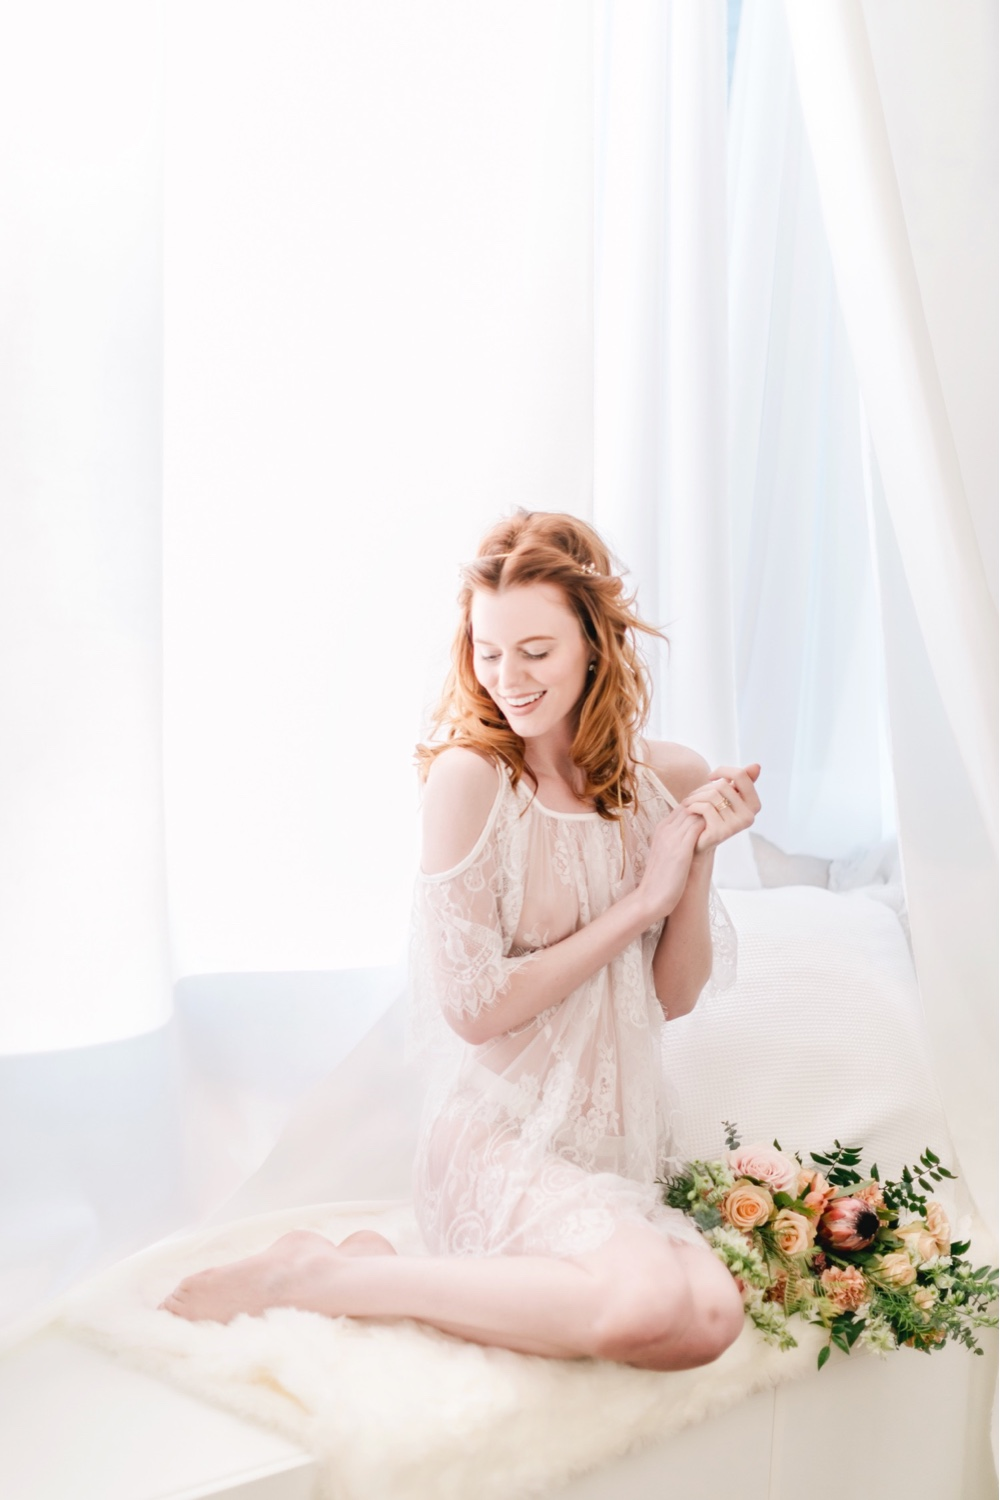 171 Boudoir Philadelphia Wedding Photographer Boudoir Photographer Philadelphia